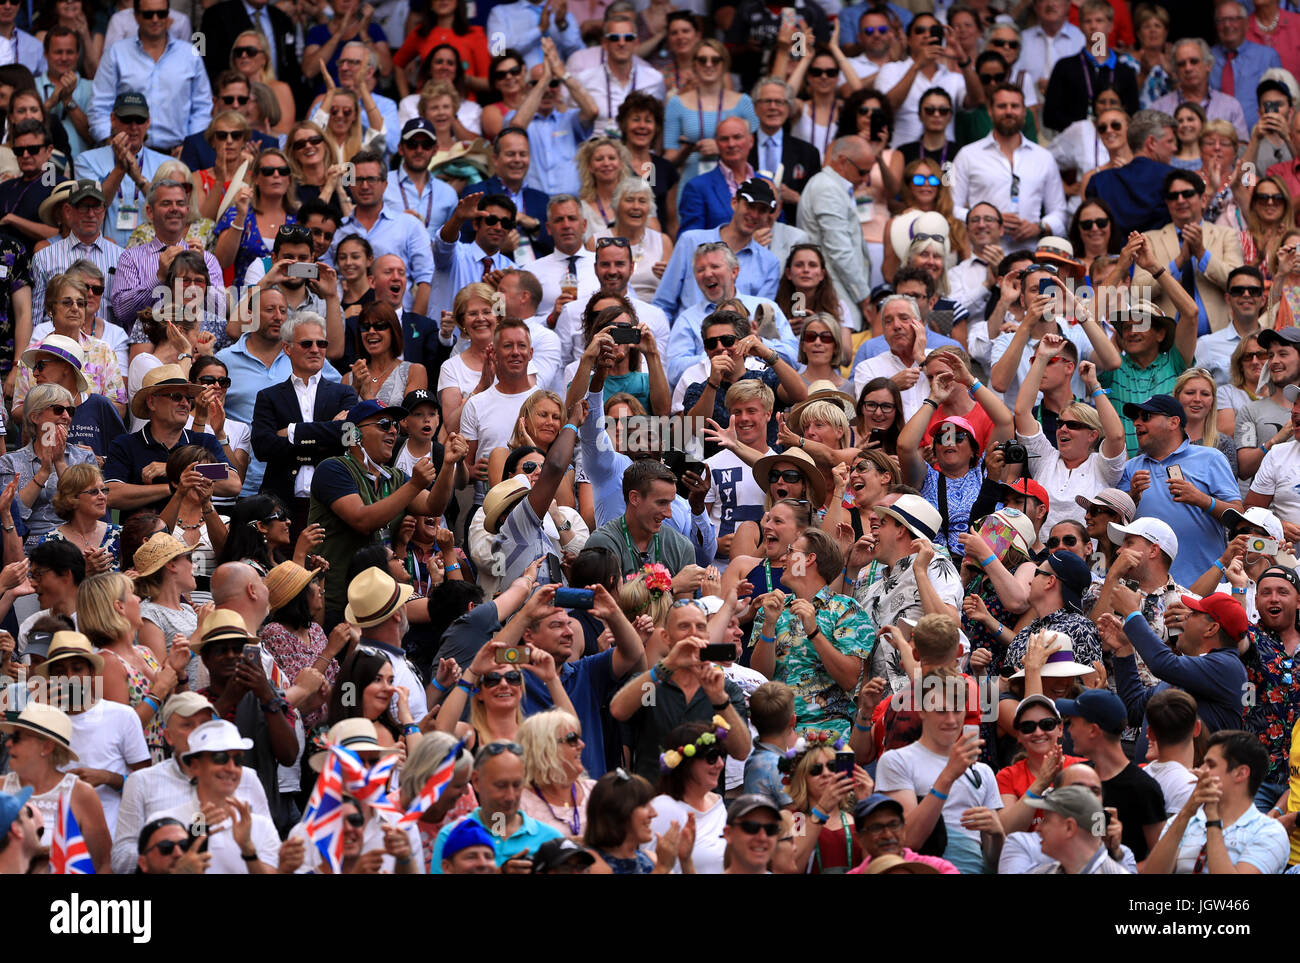 Spectators compete for the wristband of Andy Murray after he throws it into the crowd on day seven of the Wimbledon Stock Photo